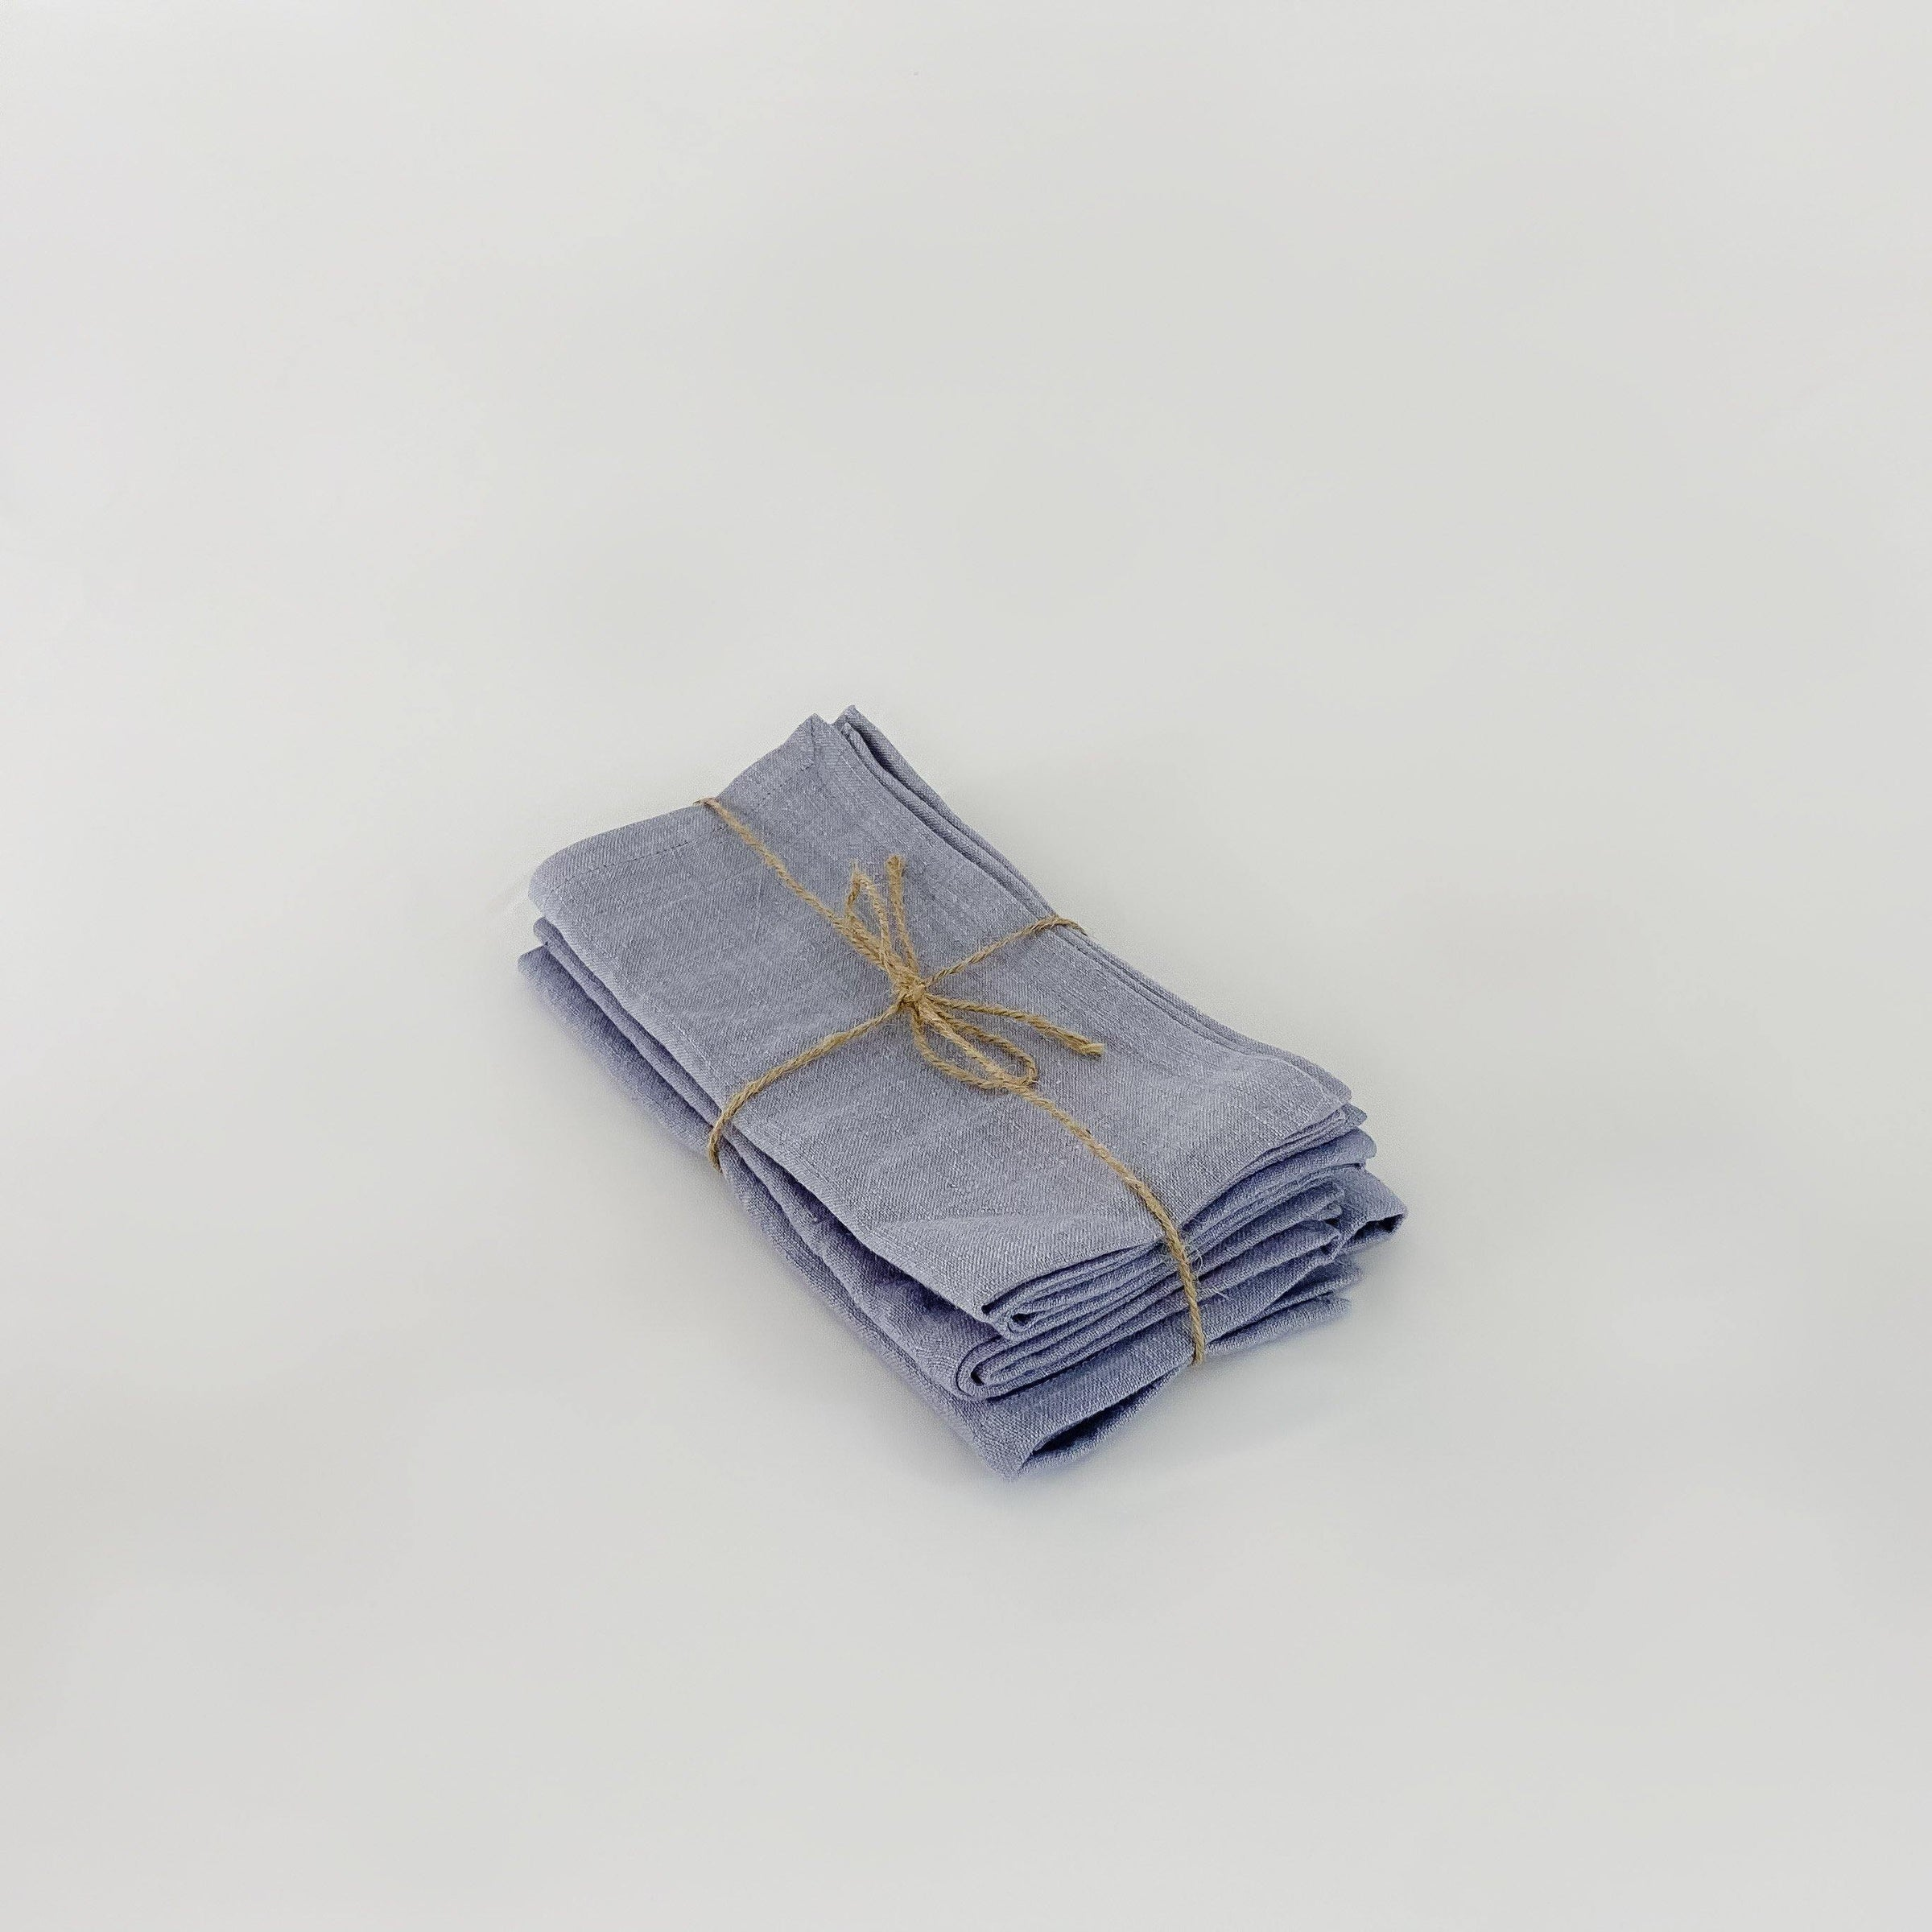 Chambray Linen Napkins, set of 4 - KM Home